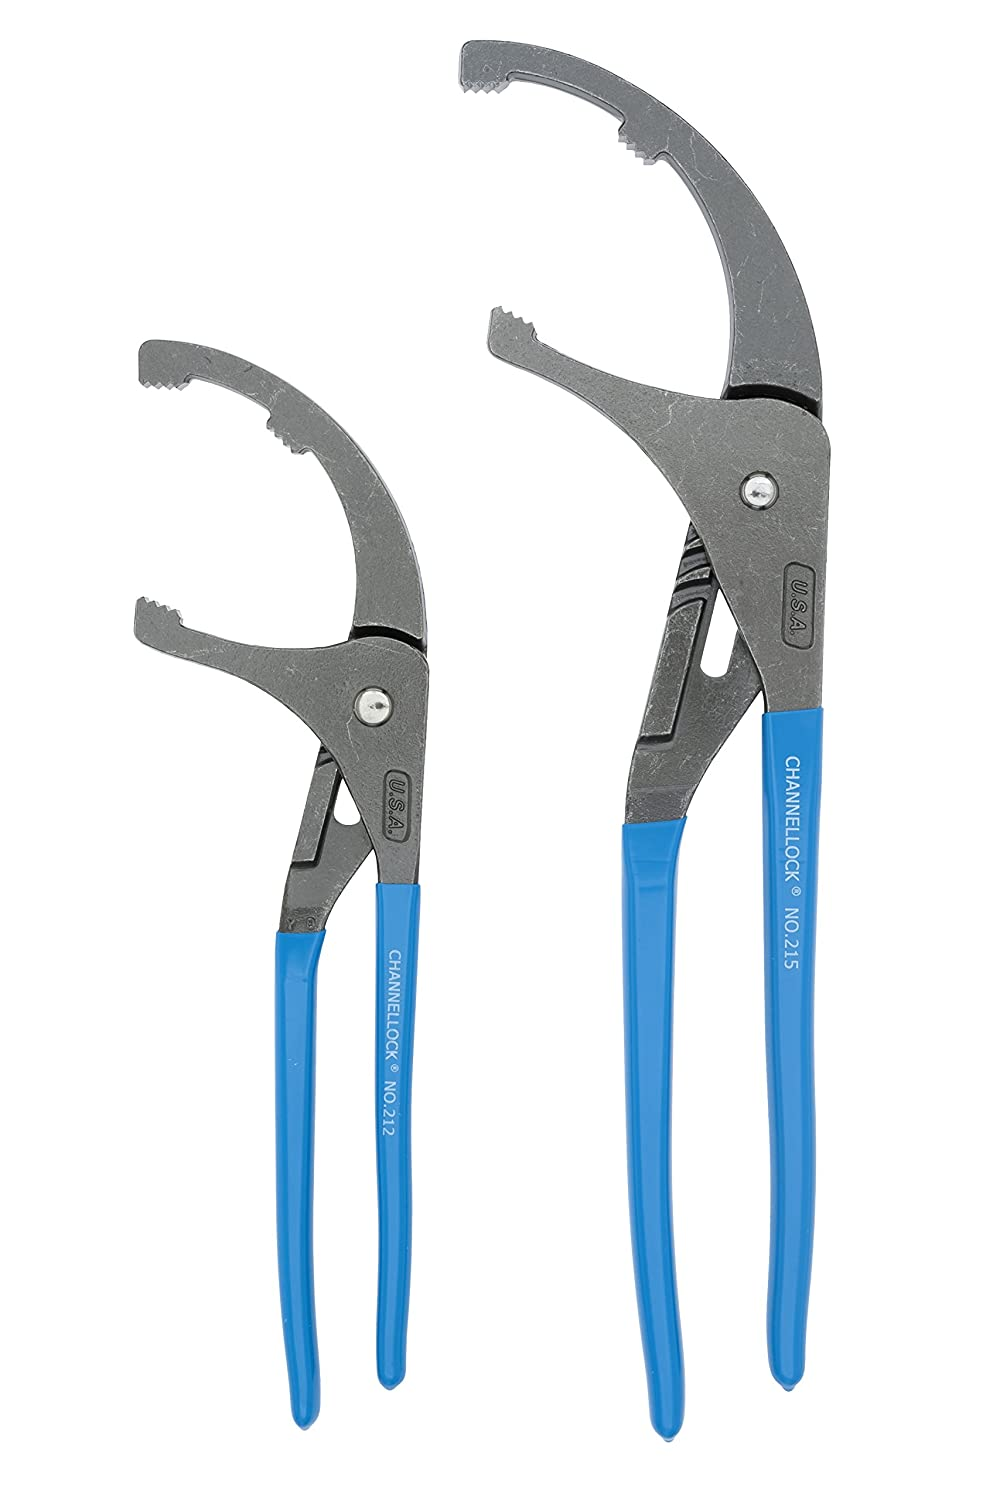 Channellock OF1 2-Piece Oil Filter Plier Set OF-1